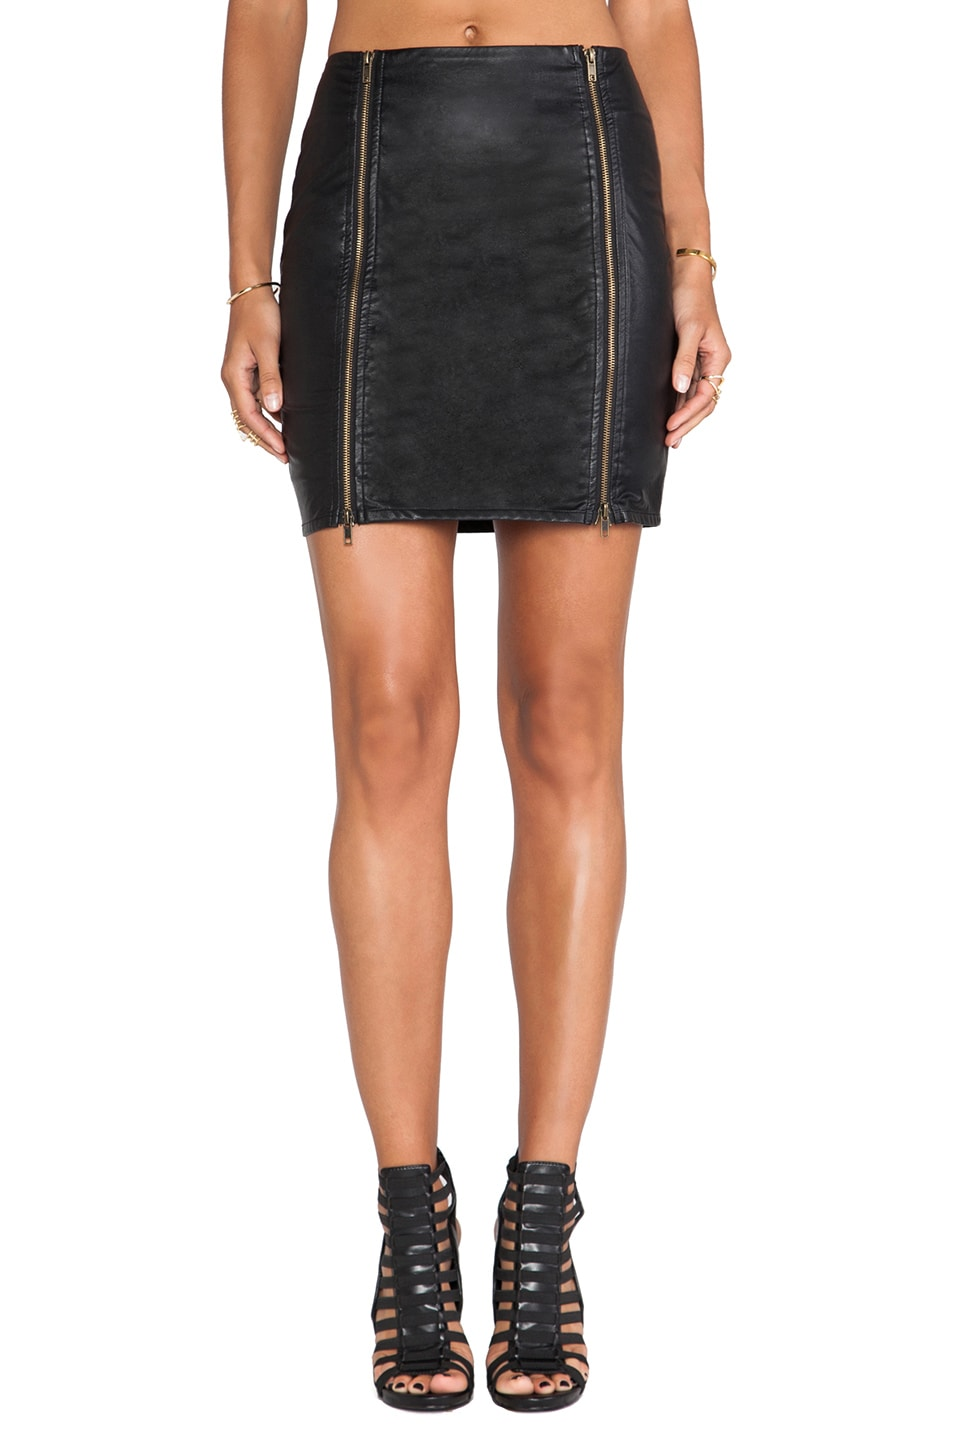 Ladakh Fly Girl Skirt in Black